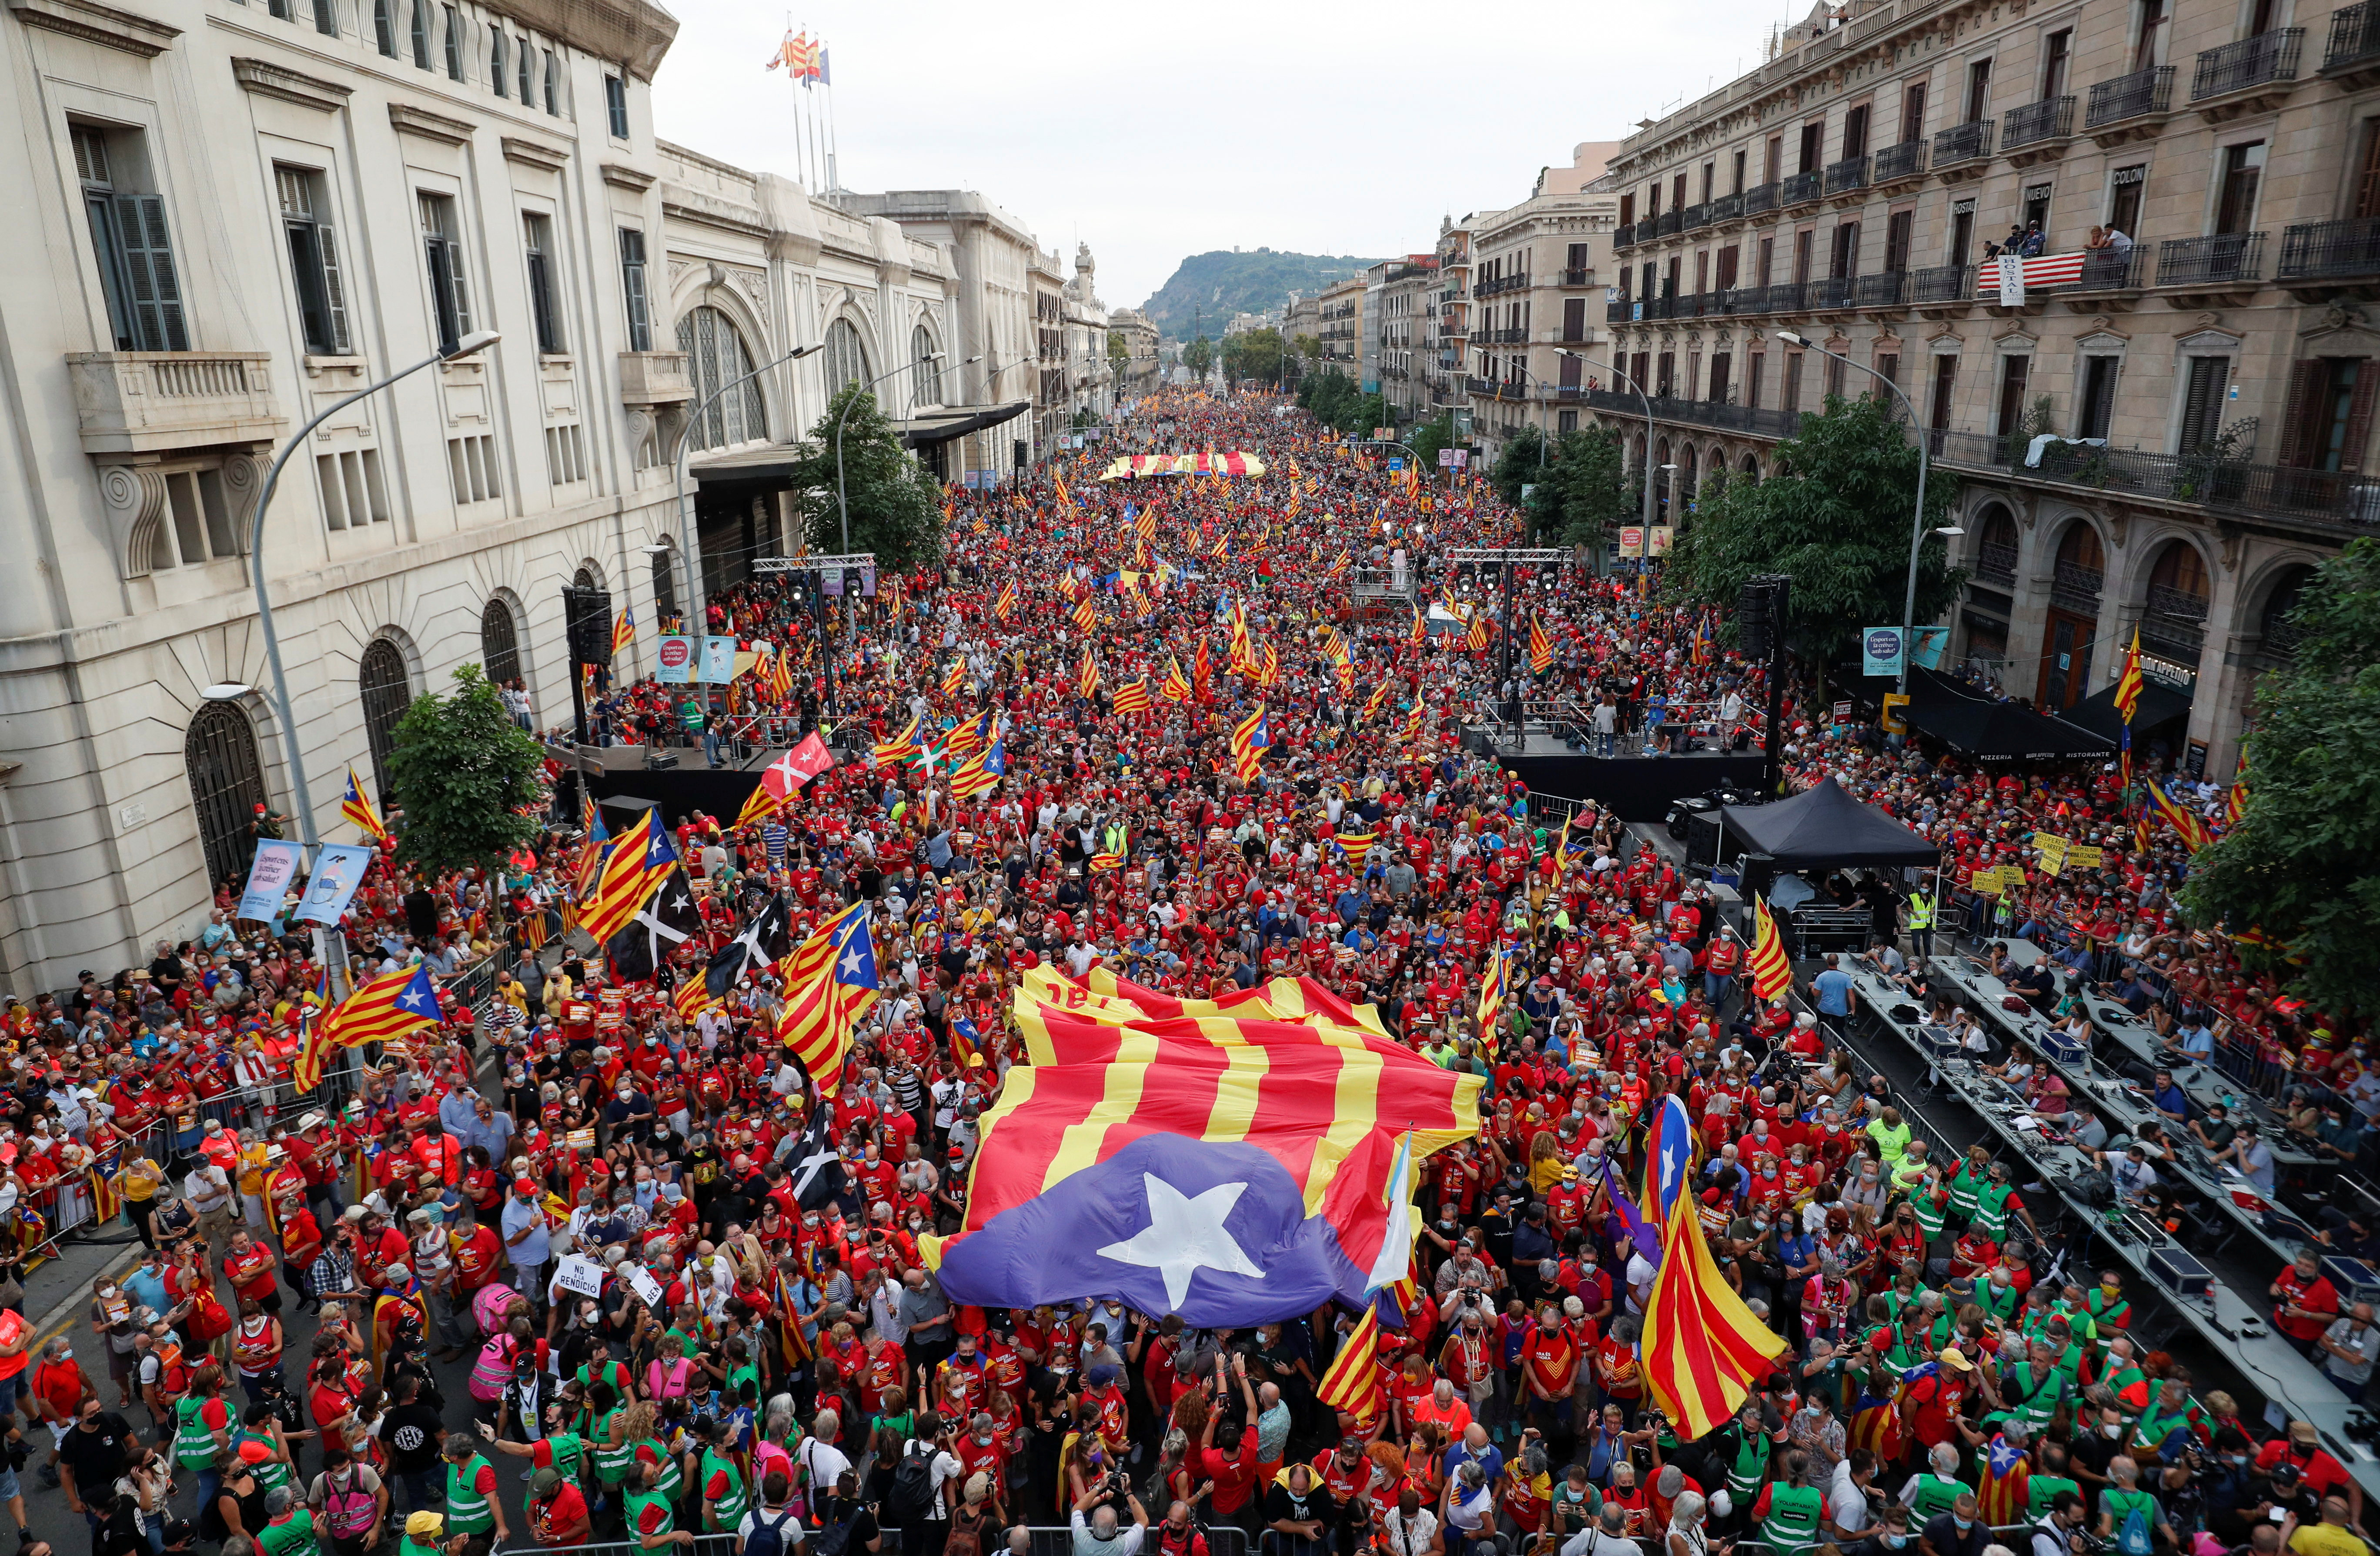 People hold up Esteladas (Catalan separatist flag) during the National Day Catalonia, called 'La Diada', in Barcelona, Spain, September 11, 2021. REUTERS/Albert Gea